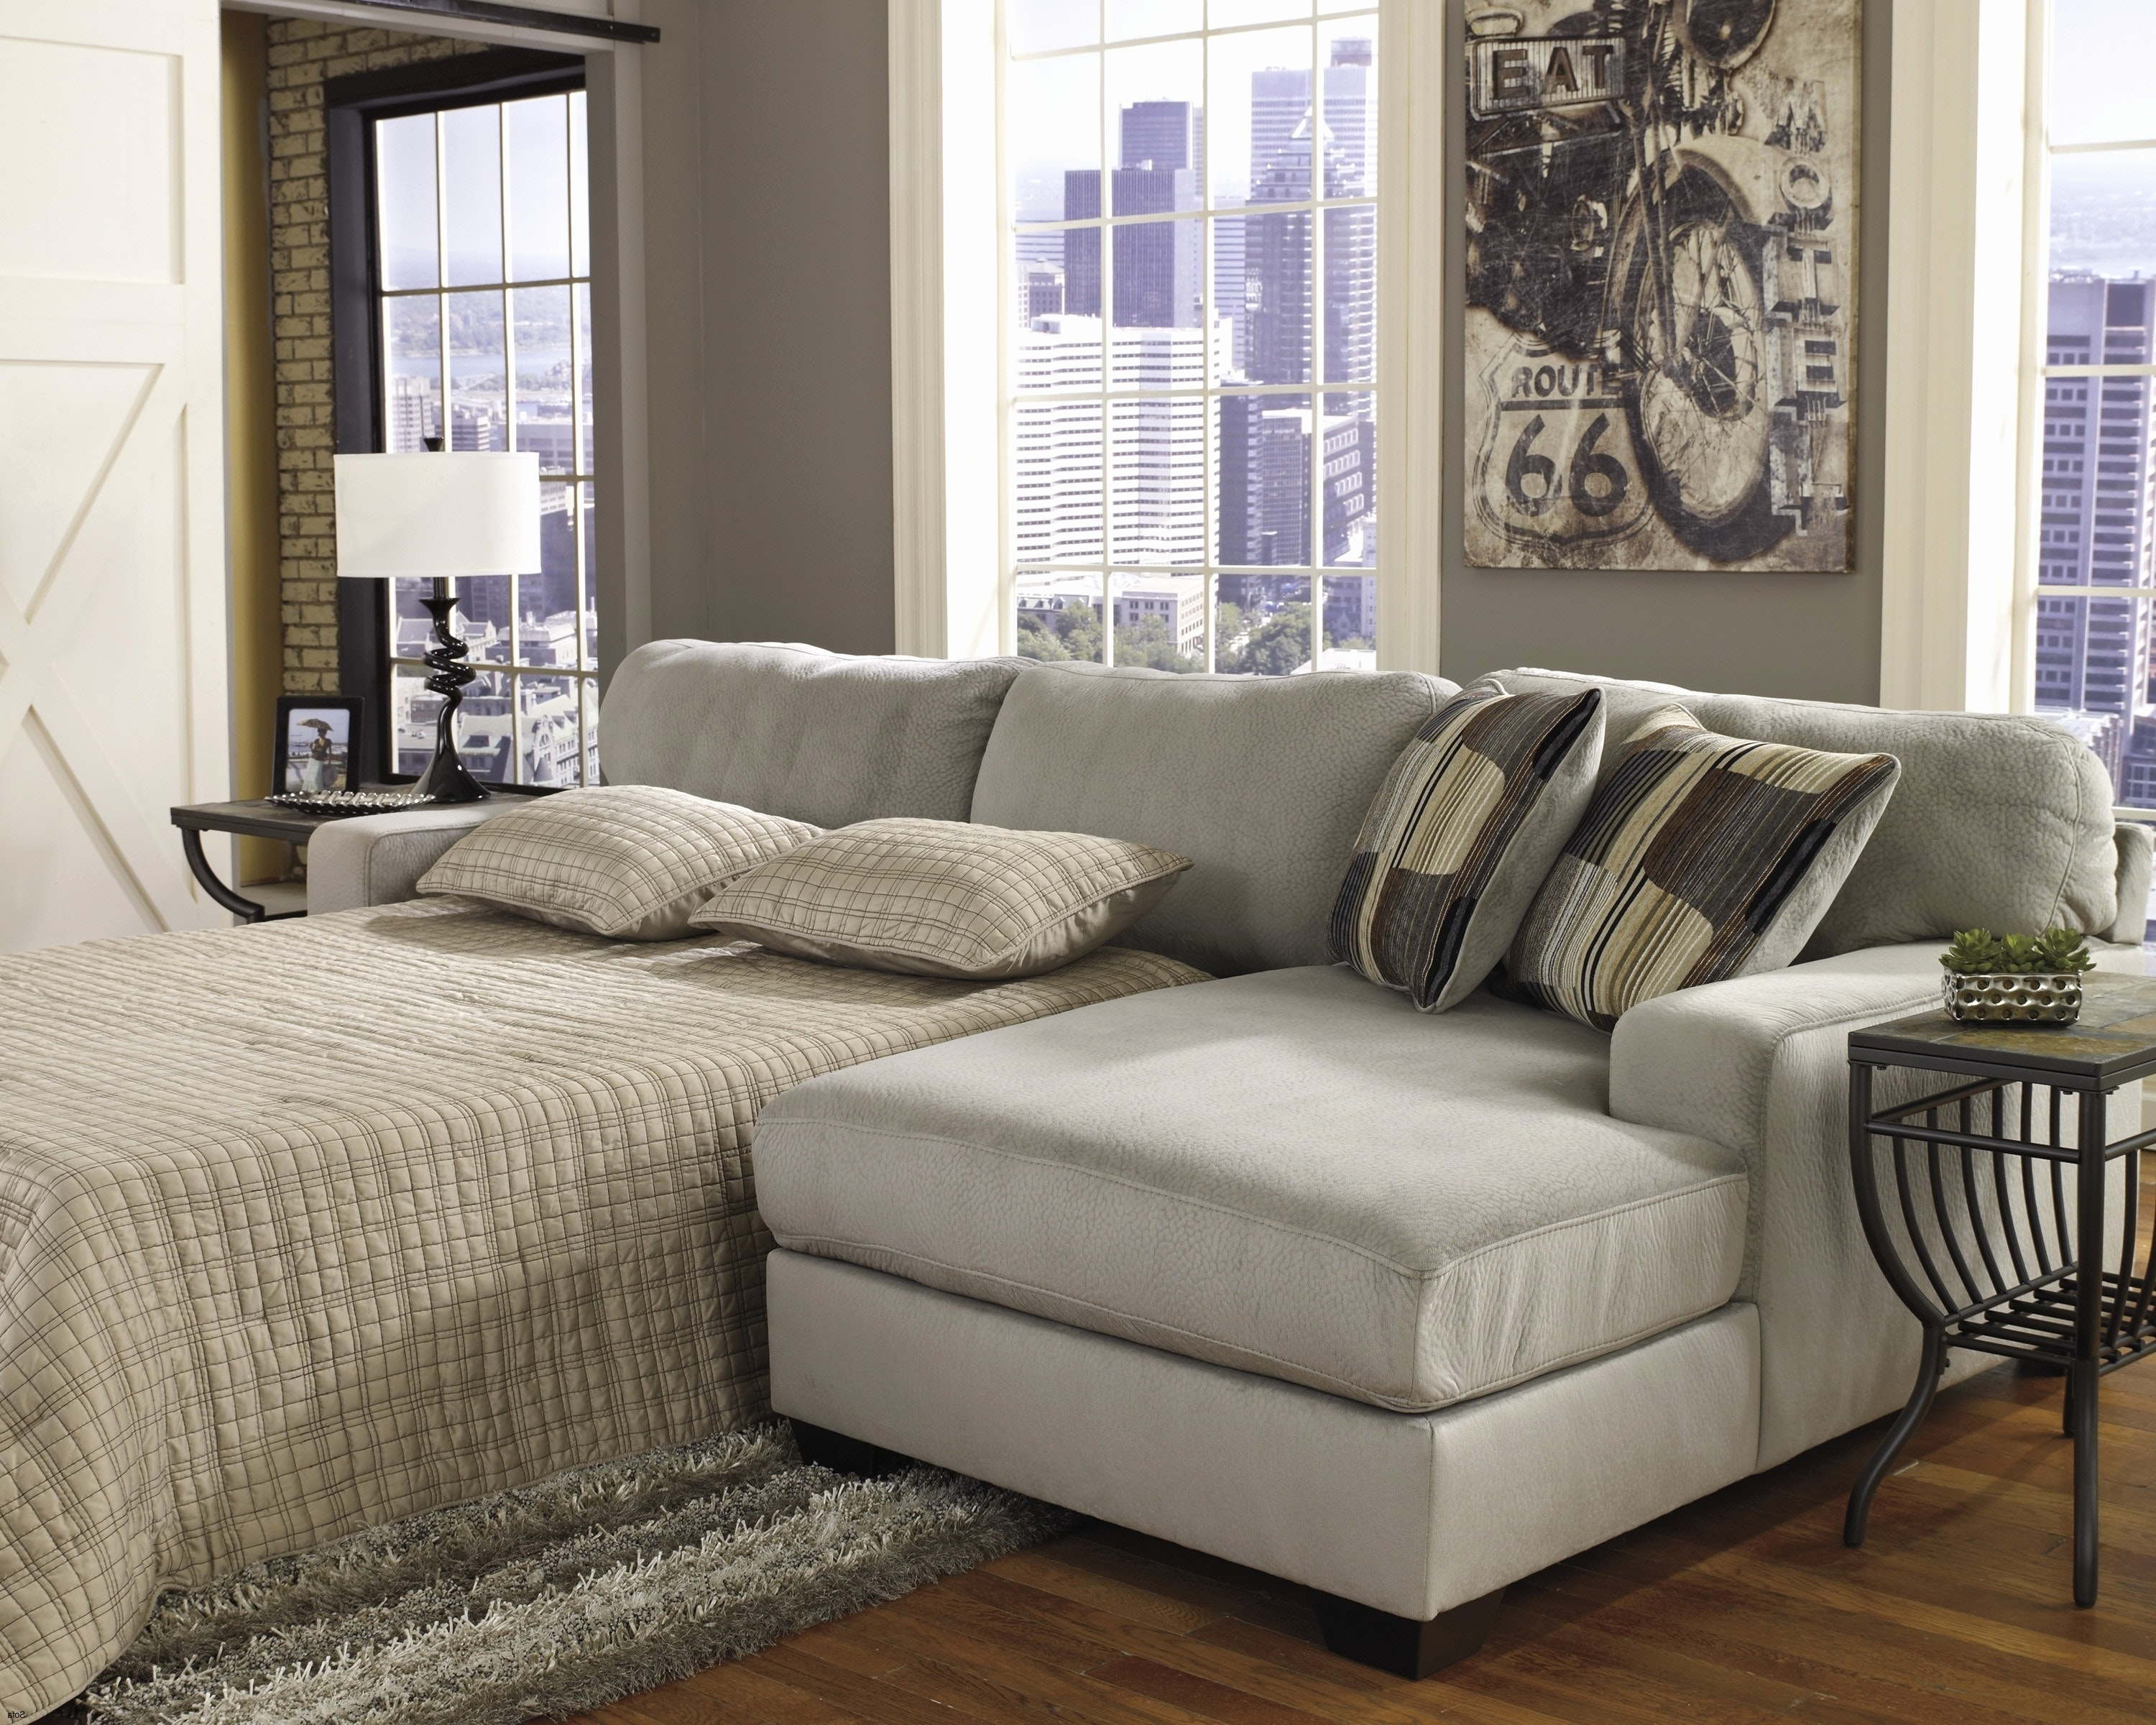 Most Popular Awesome Sectional Sofa Sleeper 2018 – Couches Ideas Intended For Room And Board Sectional Sofas (View 18 of 20)